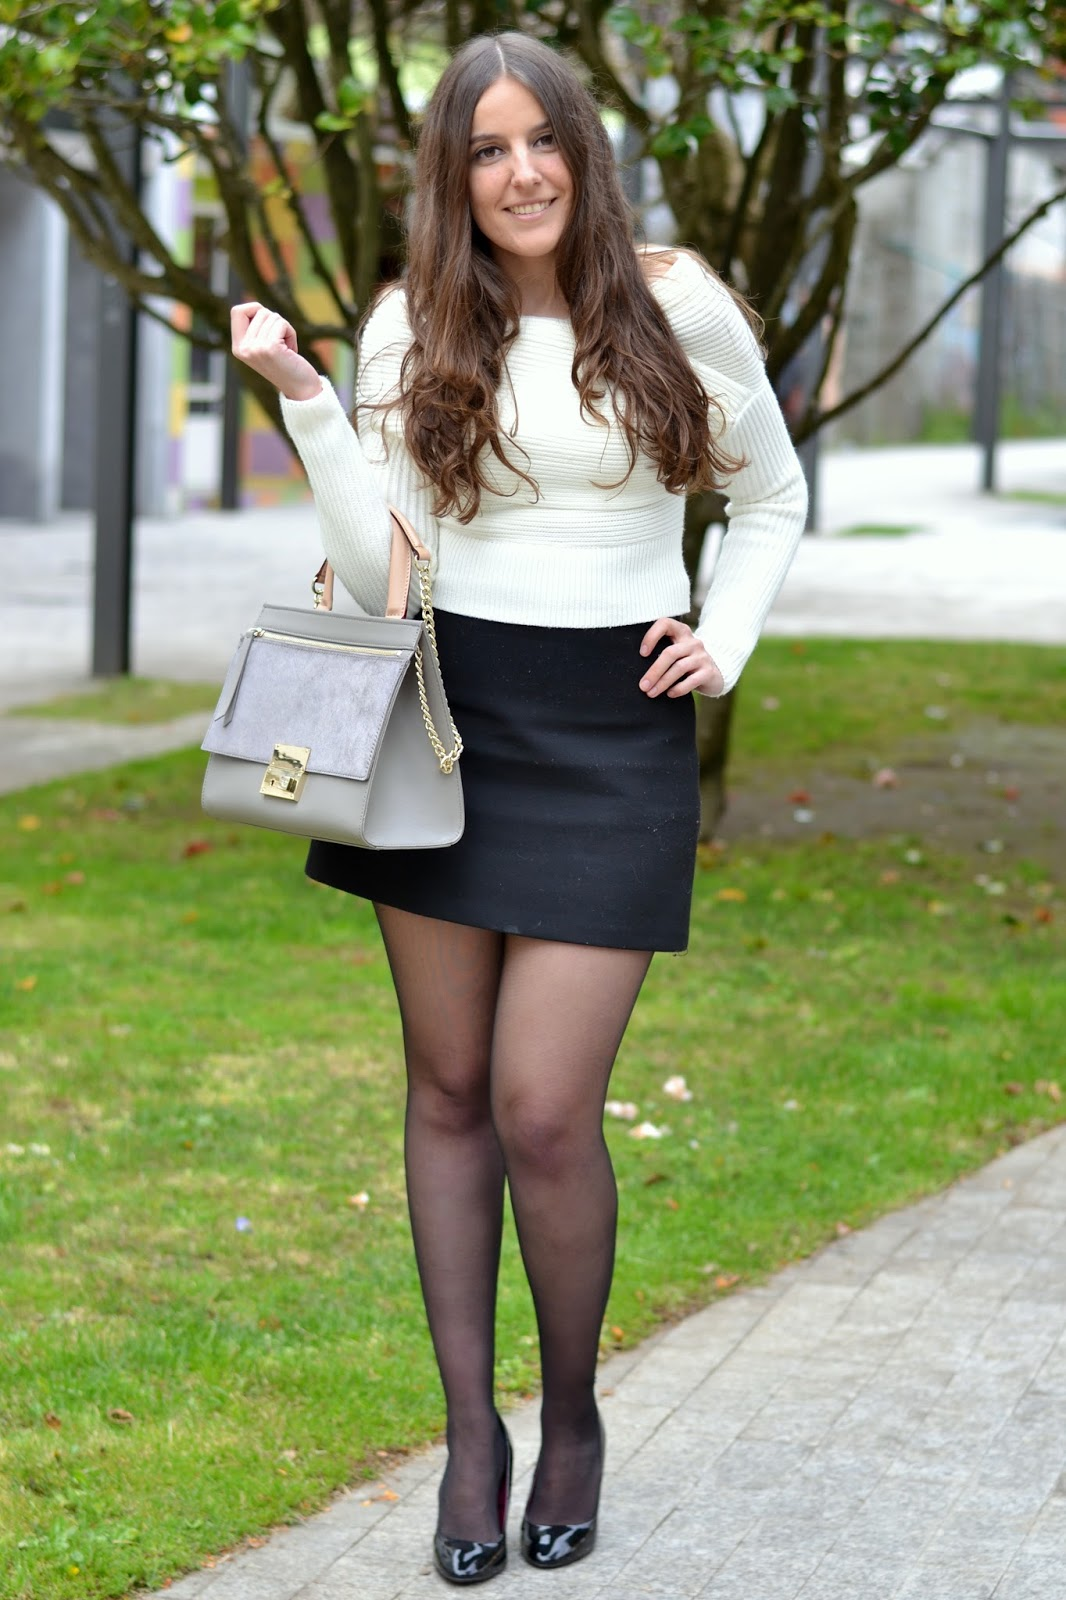 white sheinside sweater, zara black skirt, grey bag purficiación garcía